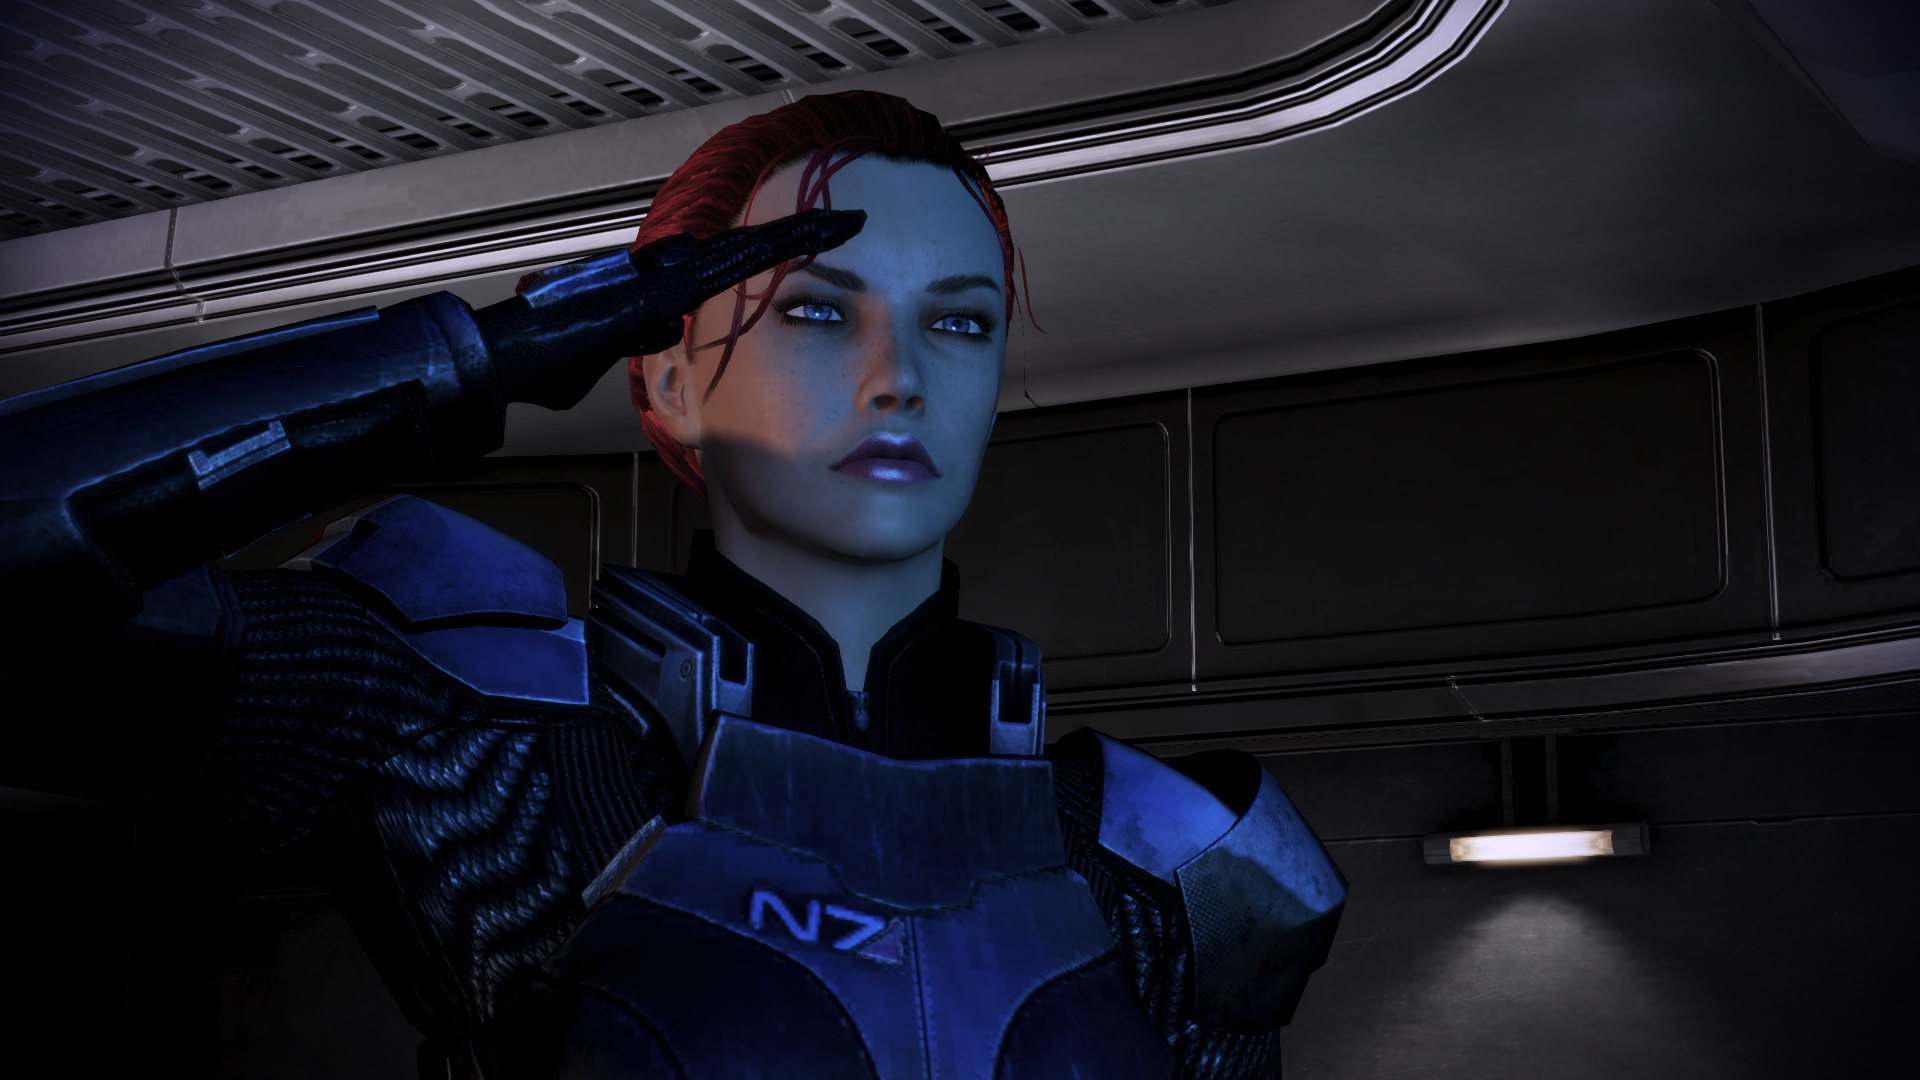 Mass effect sexcarton sexy images